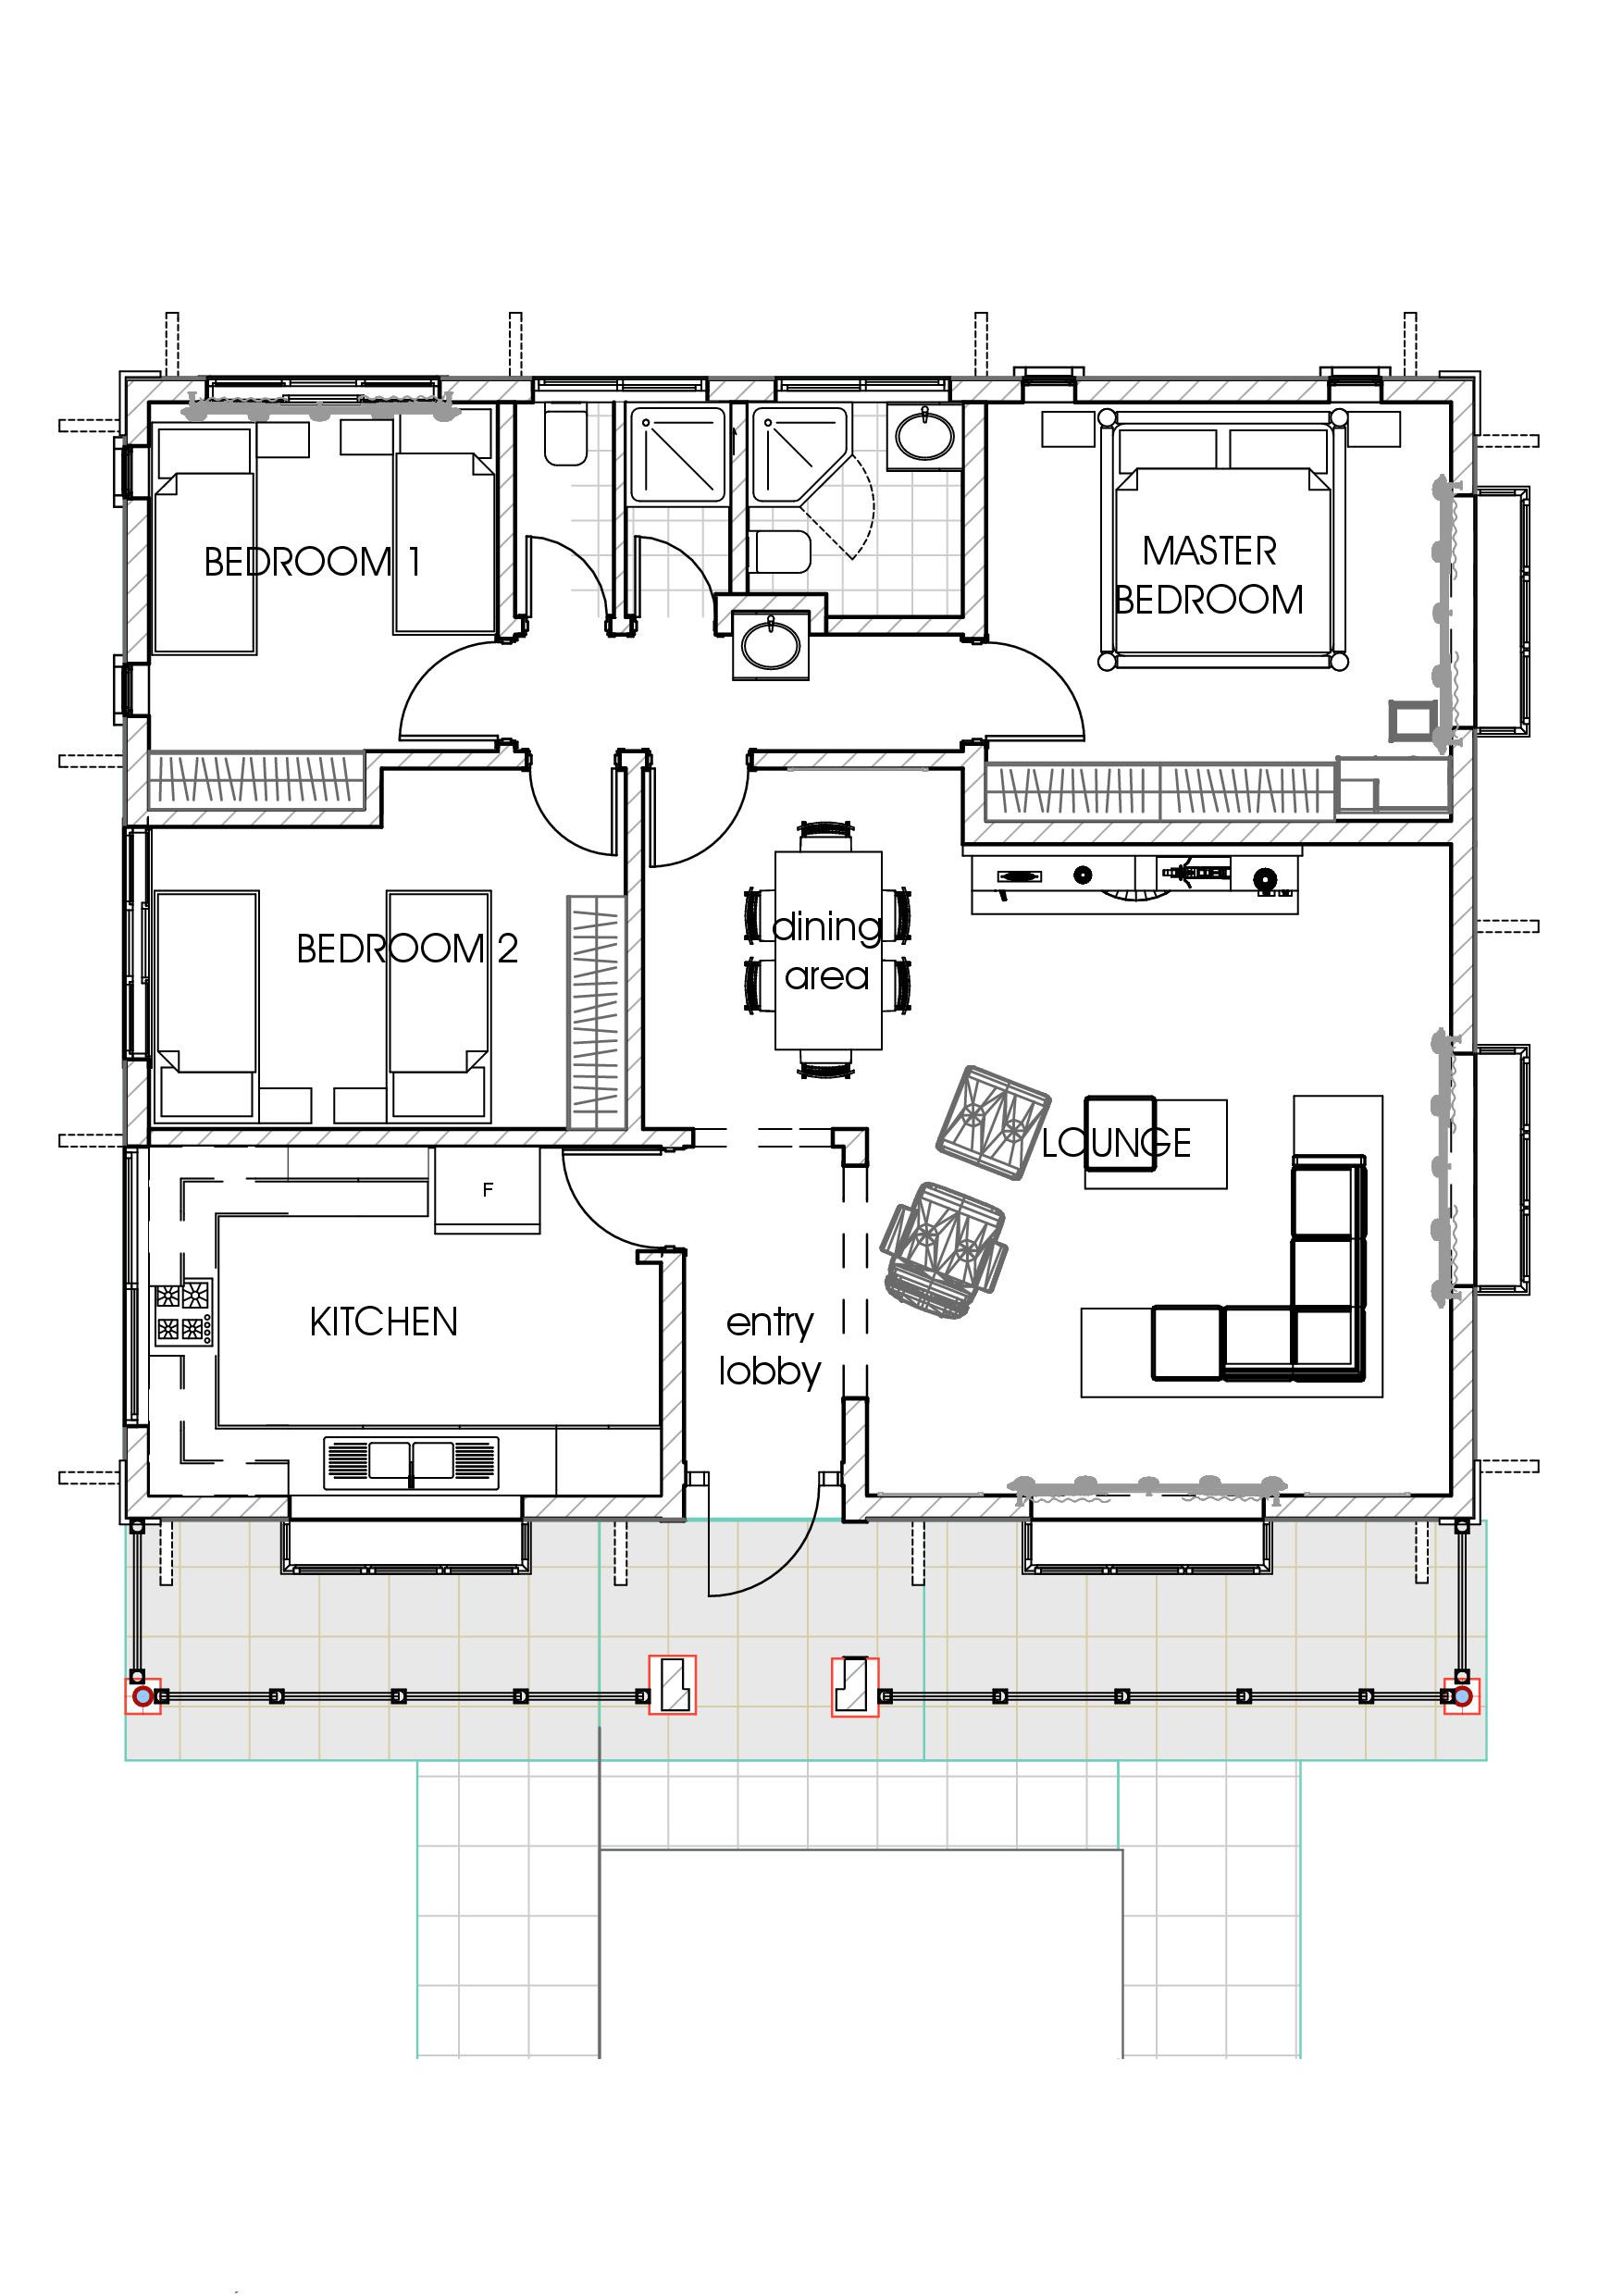 House Plans and Estimated Cost to Build Beautiful David Chola – Architect – House Plans In Kenya – the Concise